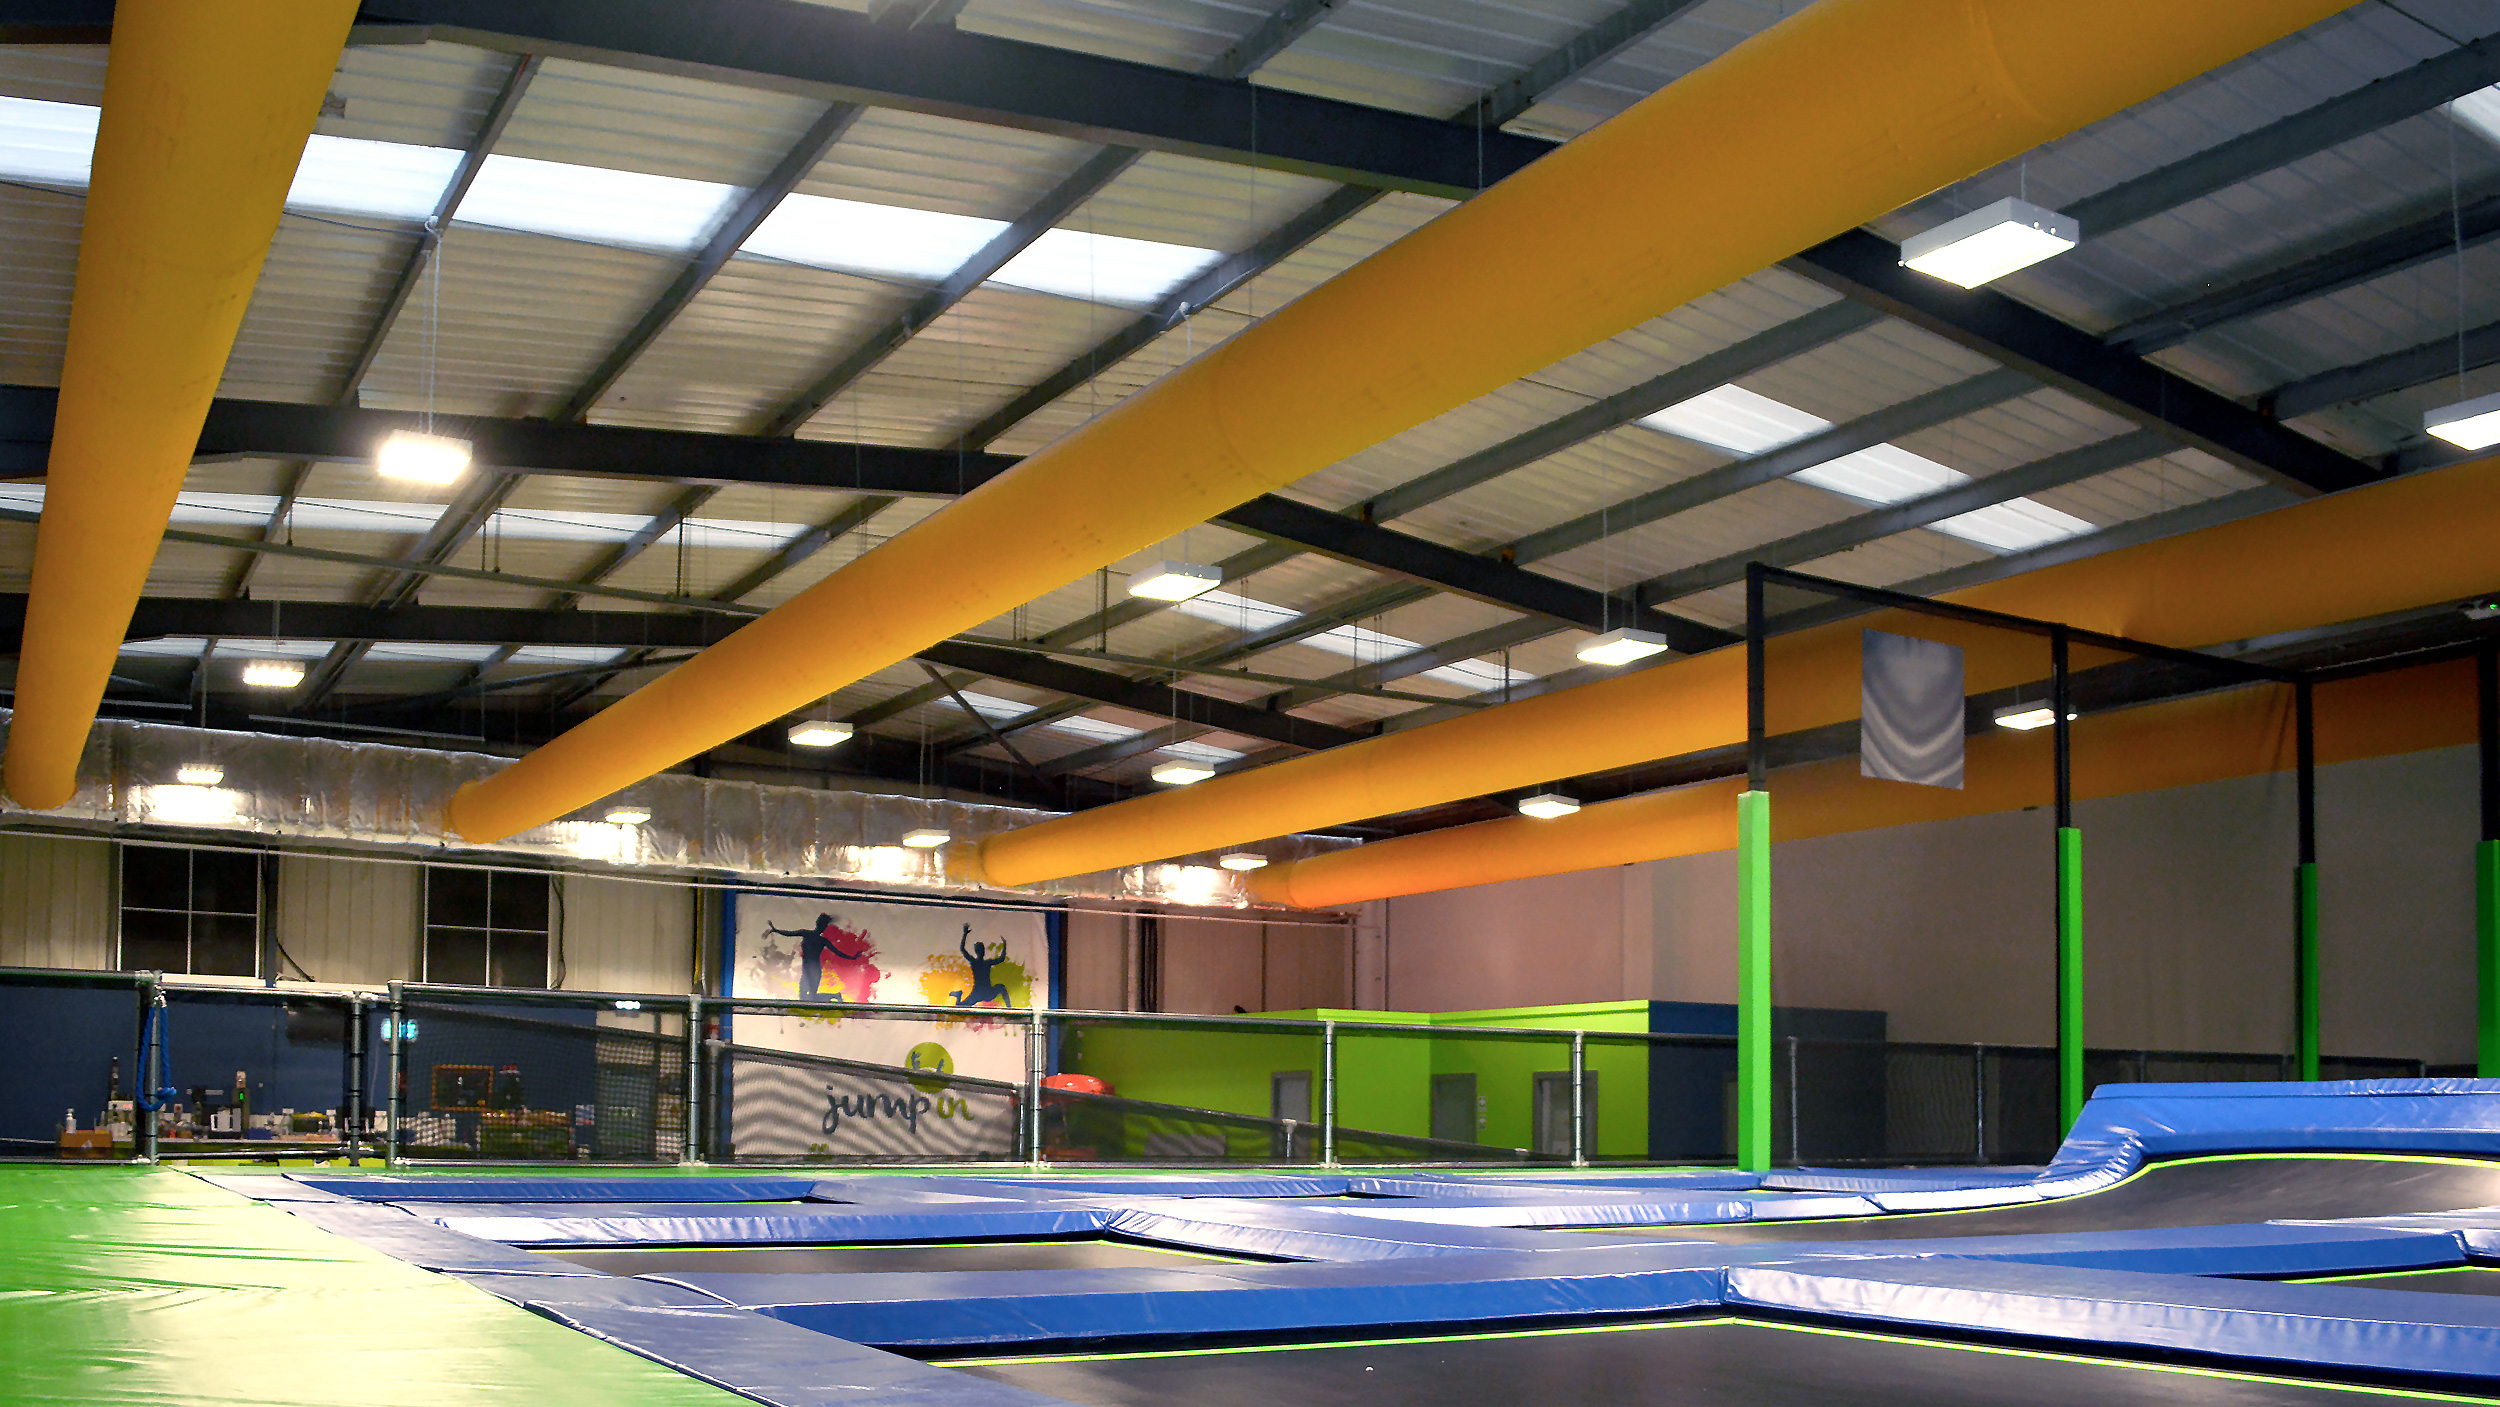 An indoor trampoline park with Prihoda fabric ducts.